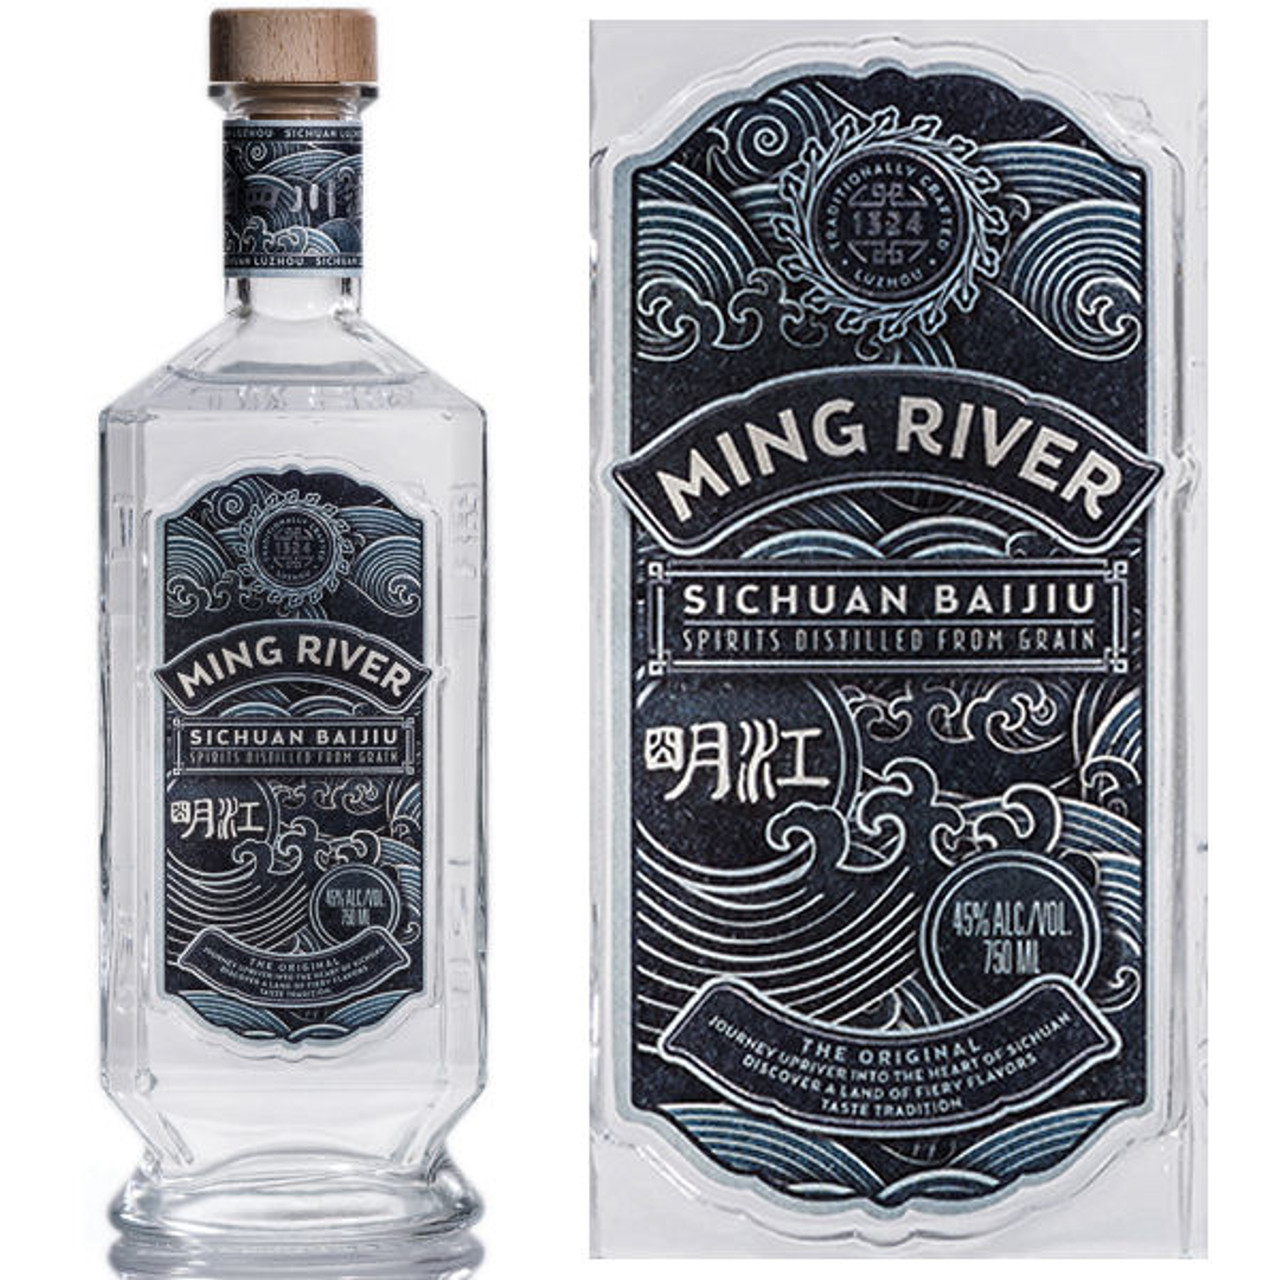 Ming River Sichuan Baijiu Chinese Spirit 750ml